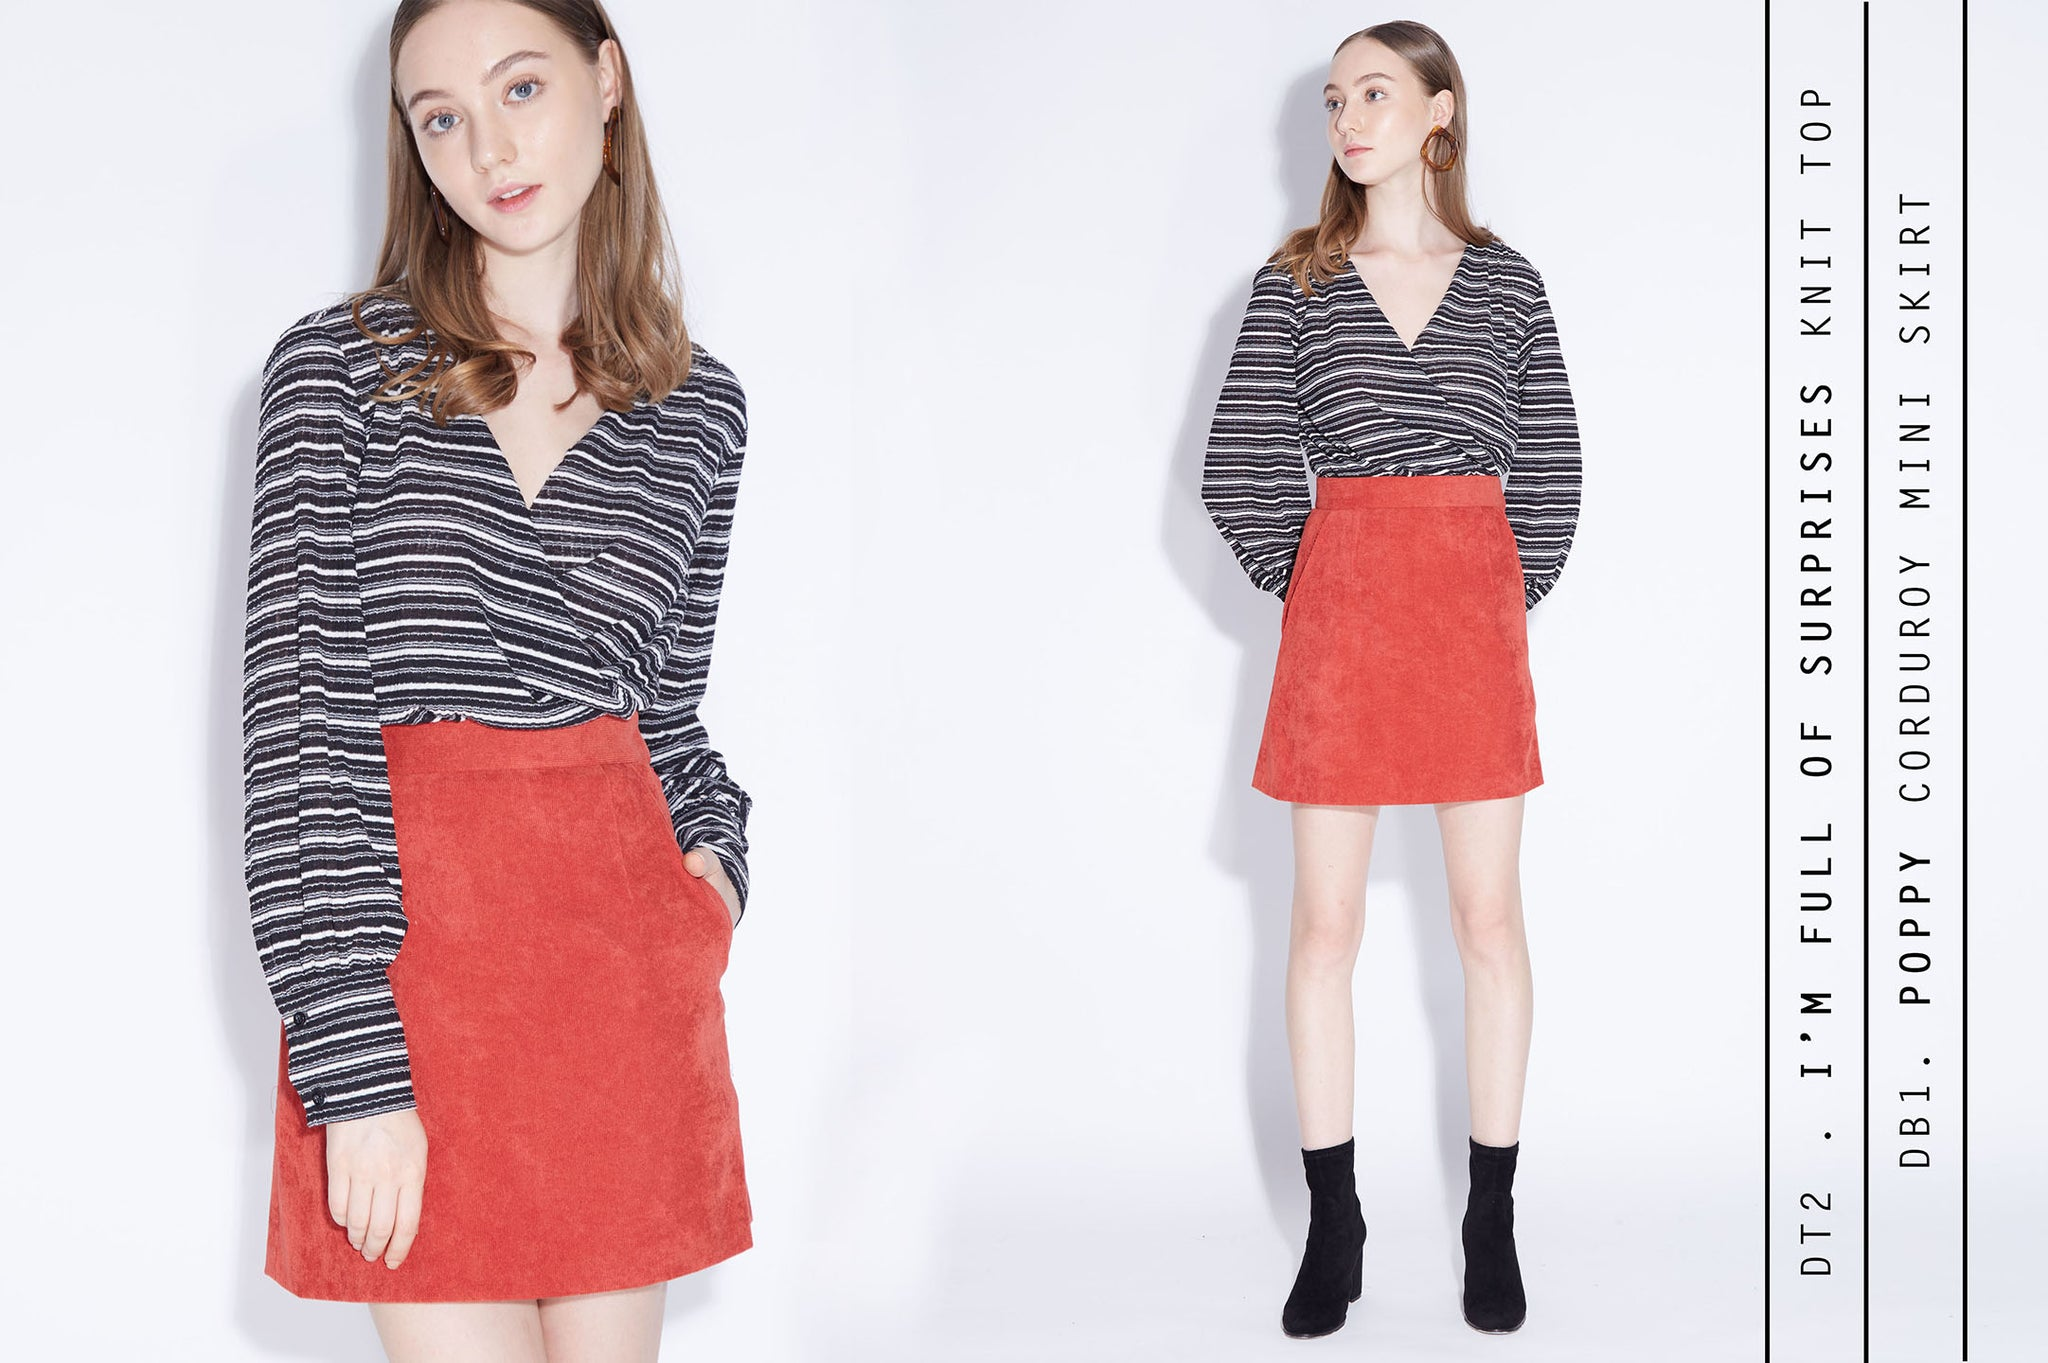 I'M FULL OF SURPRISES Stripes Top + POPPY LOVE Skirt